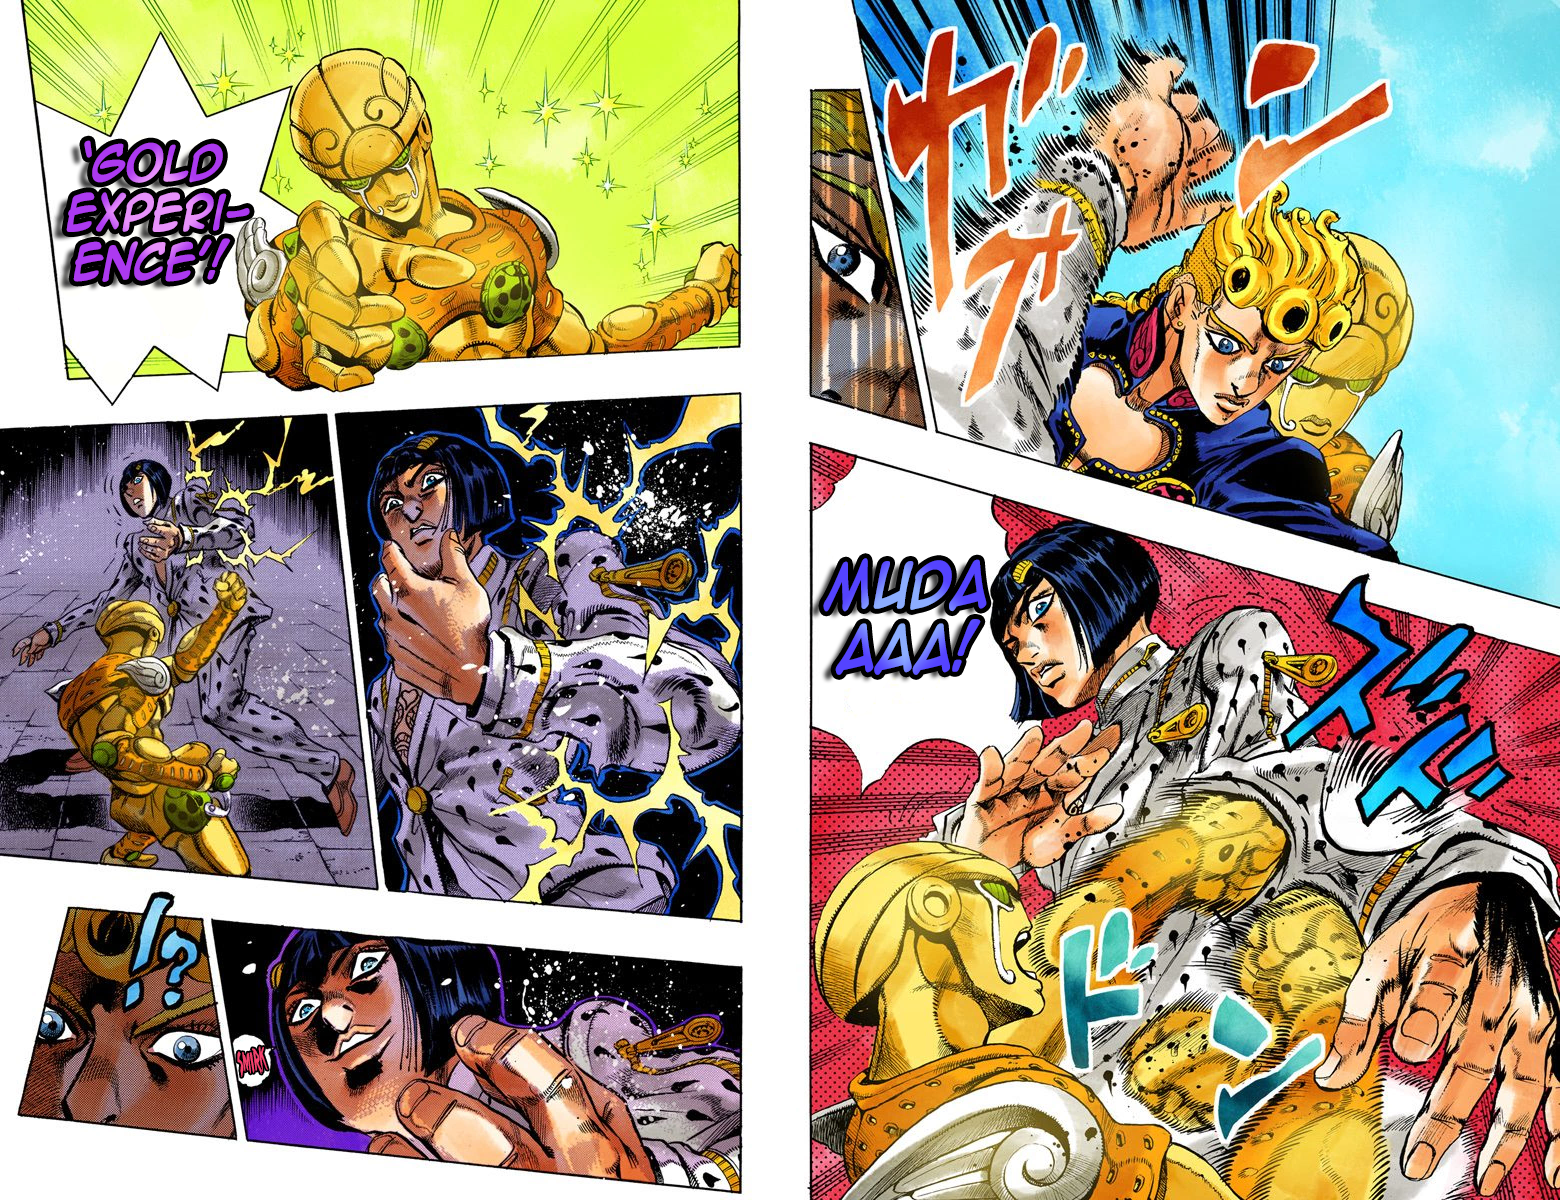 2 weeks from today, Jojo's Bizarre Adventure: Vento Aureo